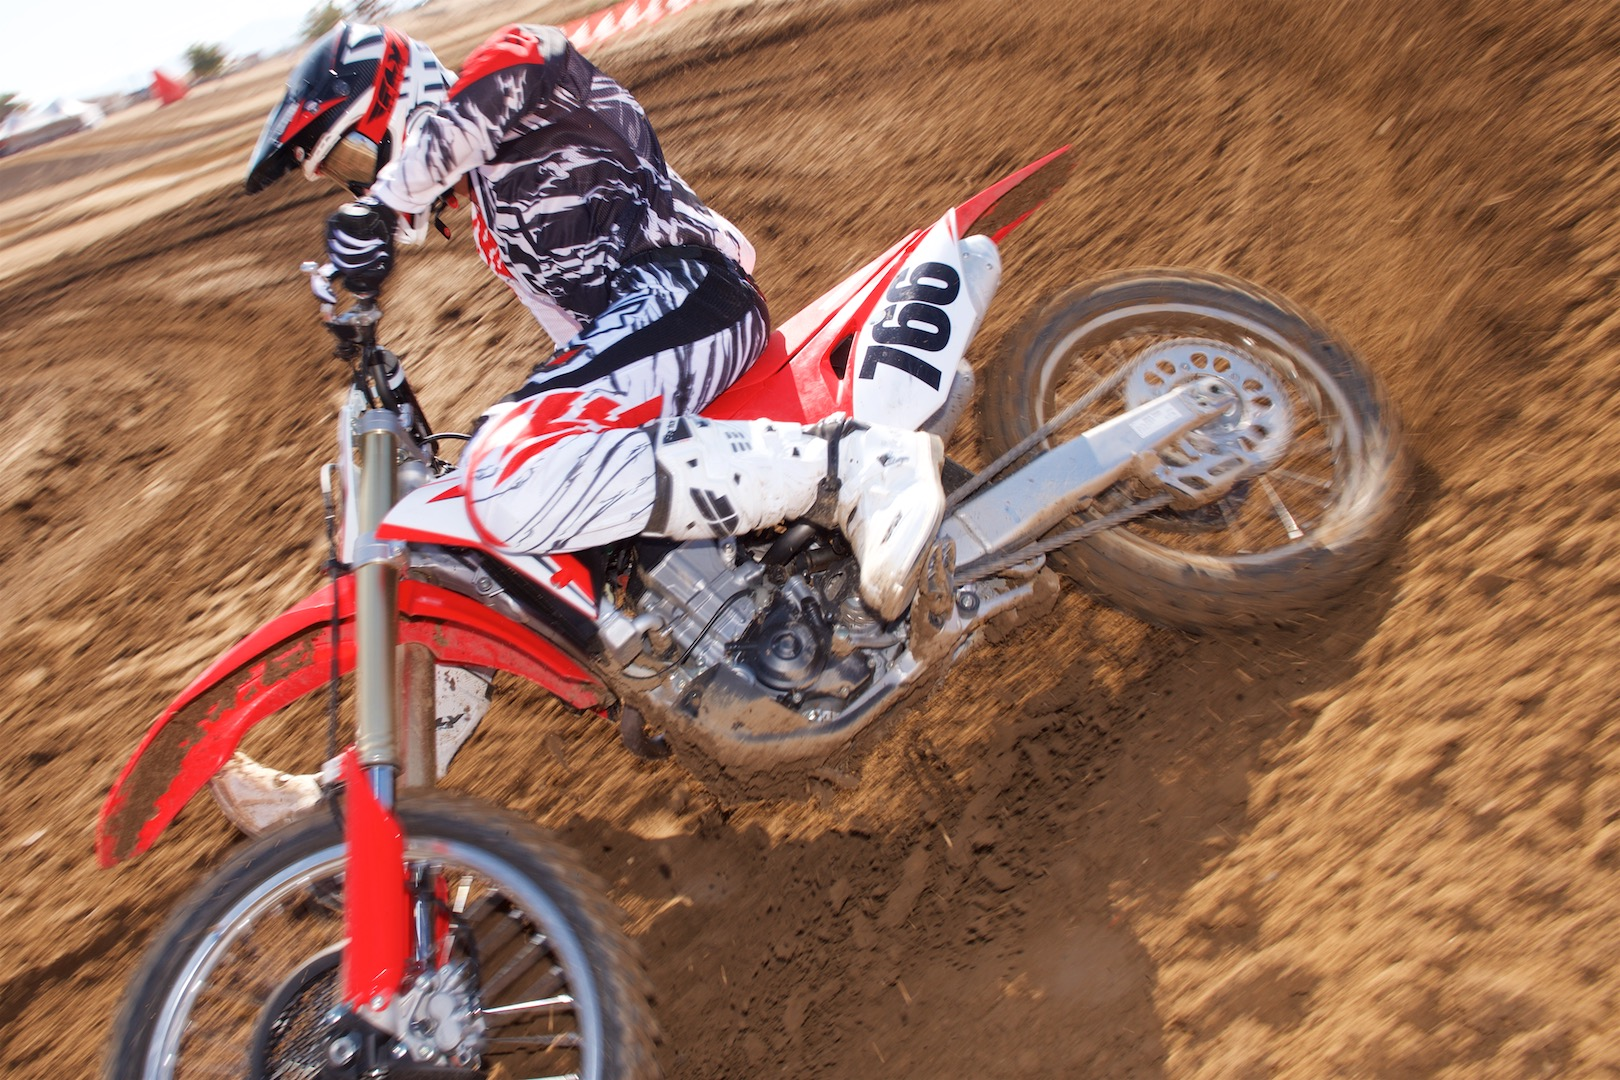 2018 Honda CRF450R First Ride Review - Aggressive turn